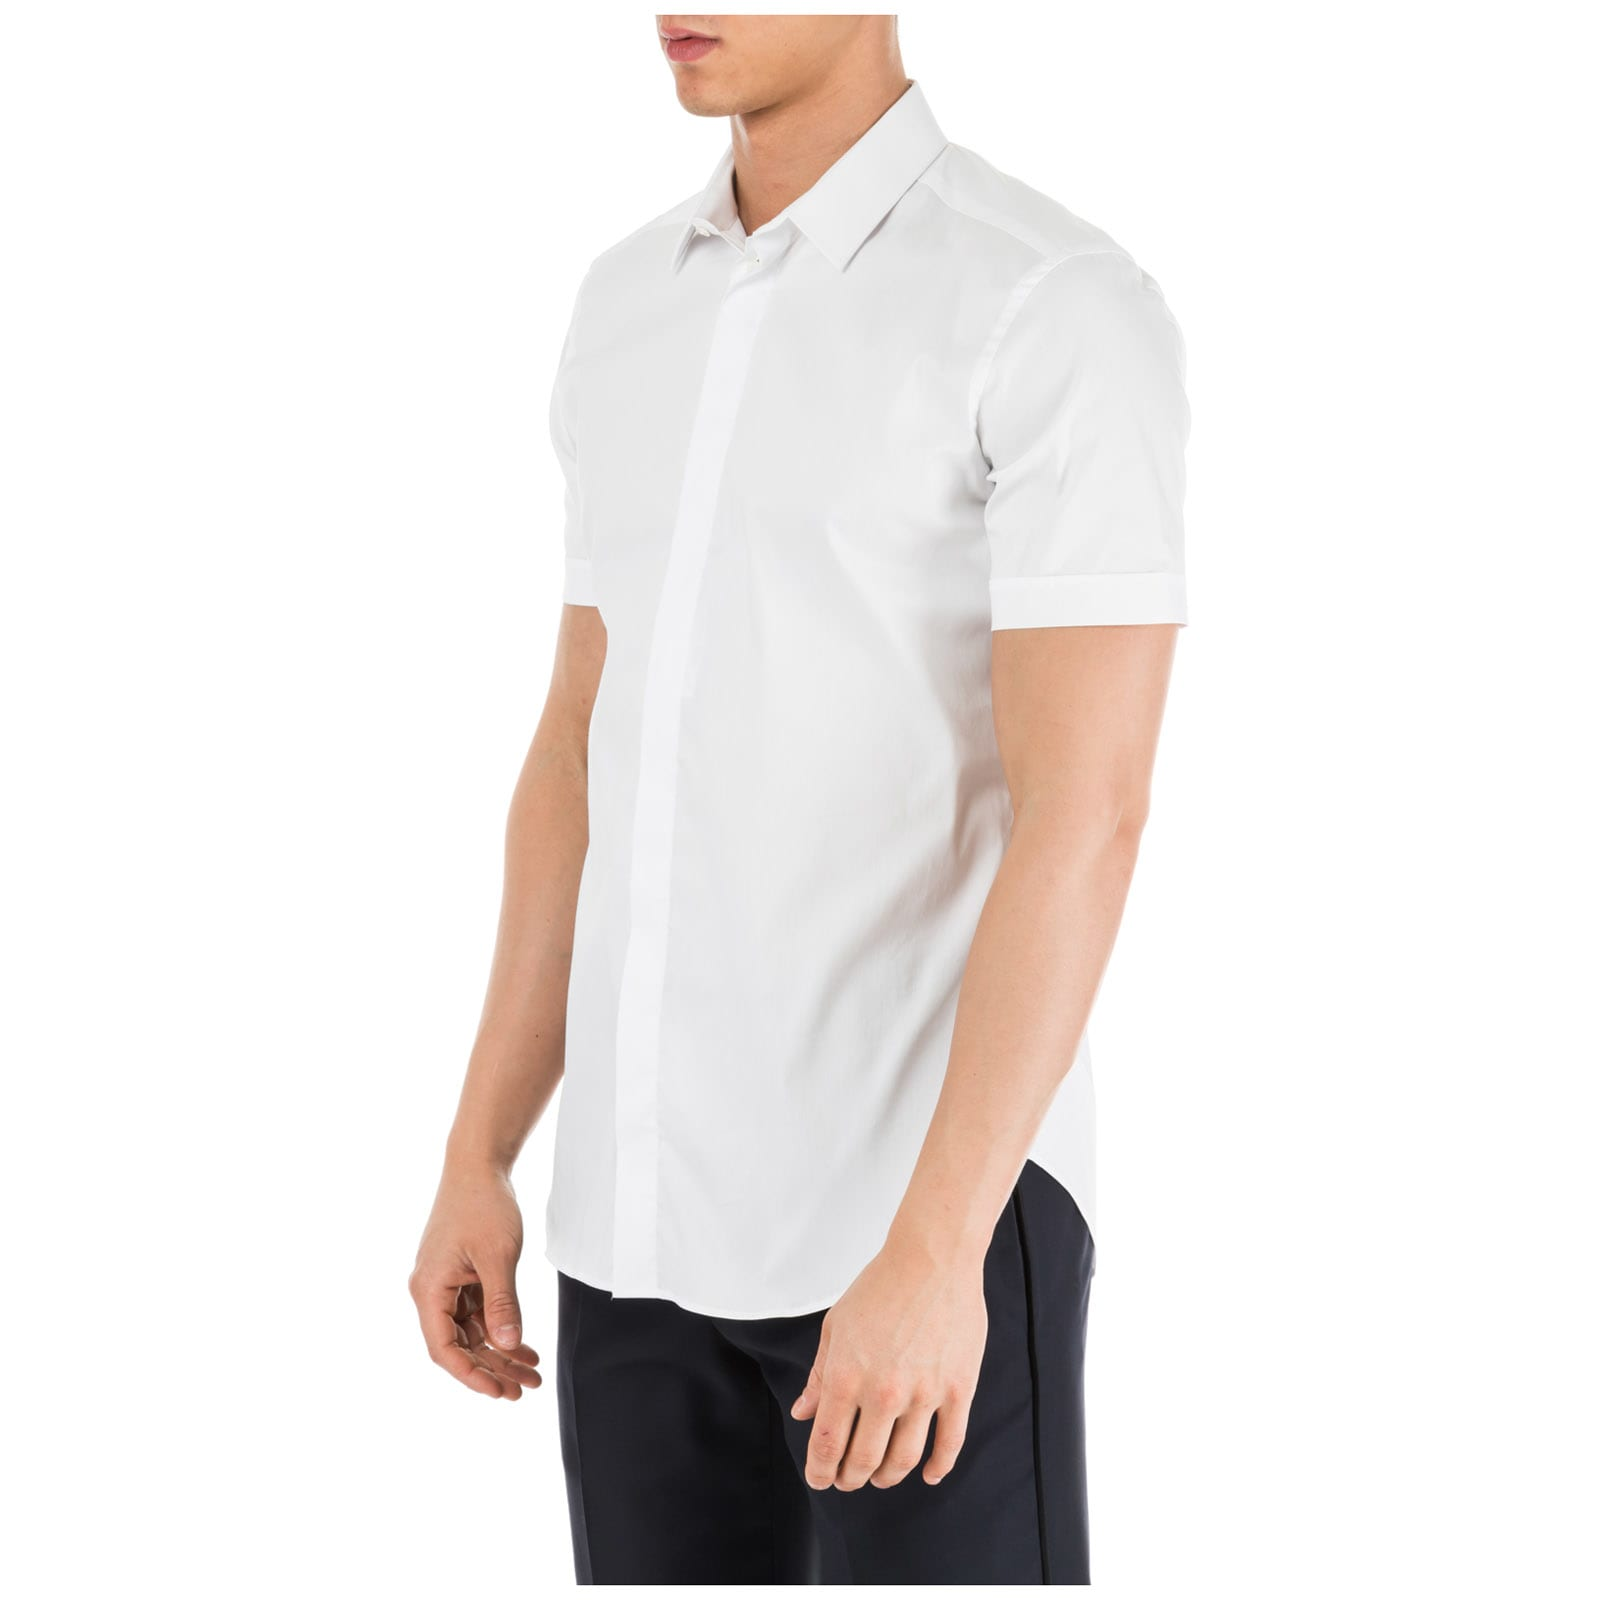 separation shoes 1a22a fd790 Best price on the market at italist | Emporio Armani Emporio Armani  Herrenhemd Kurzarmhemd Herren T-shirt Slim Fit